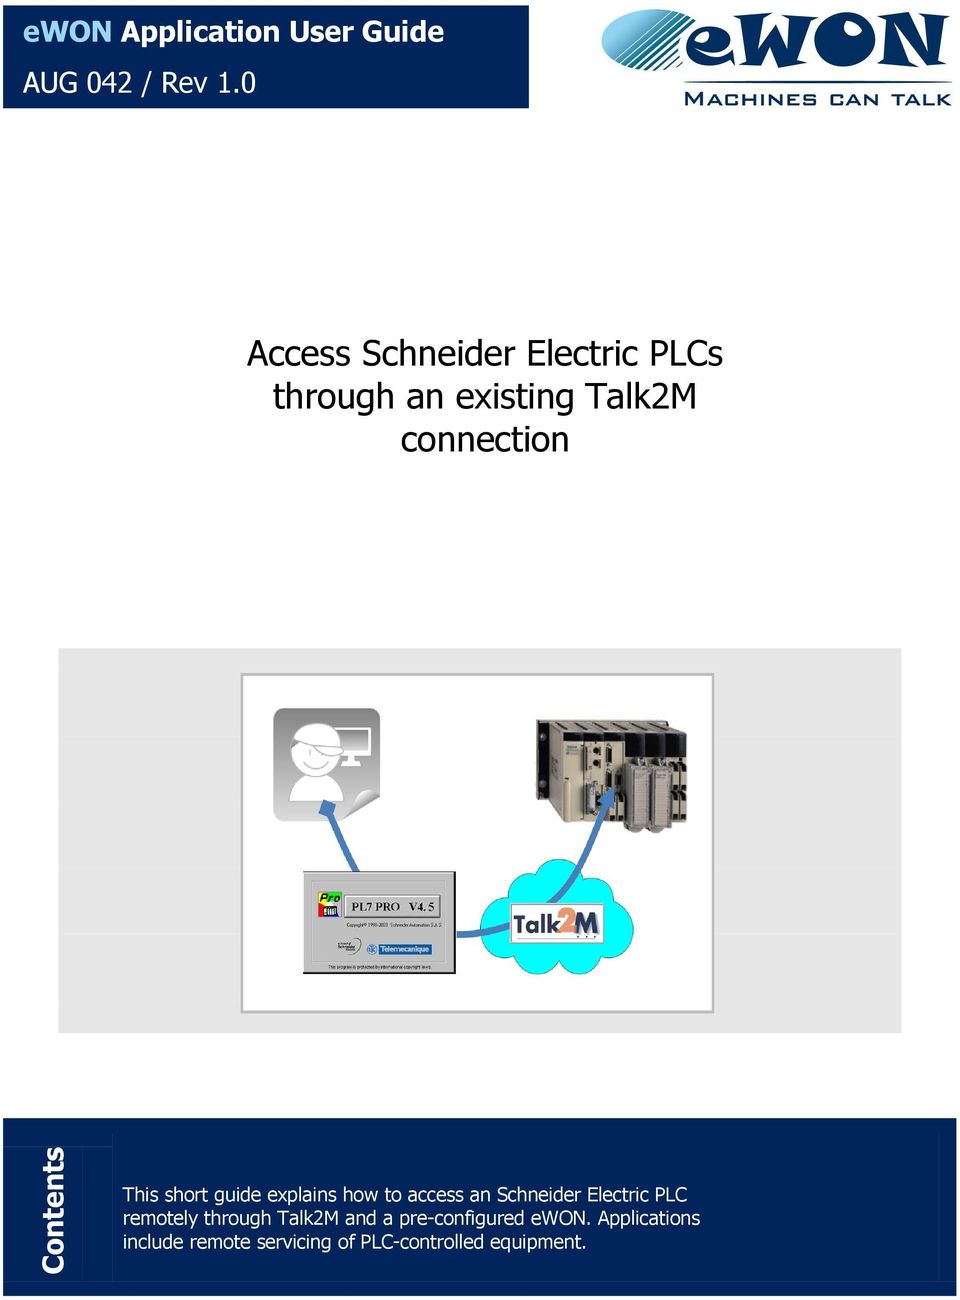 Contents This short guide explains how to access an Schneider Electric PLC